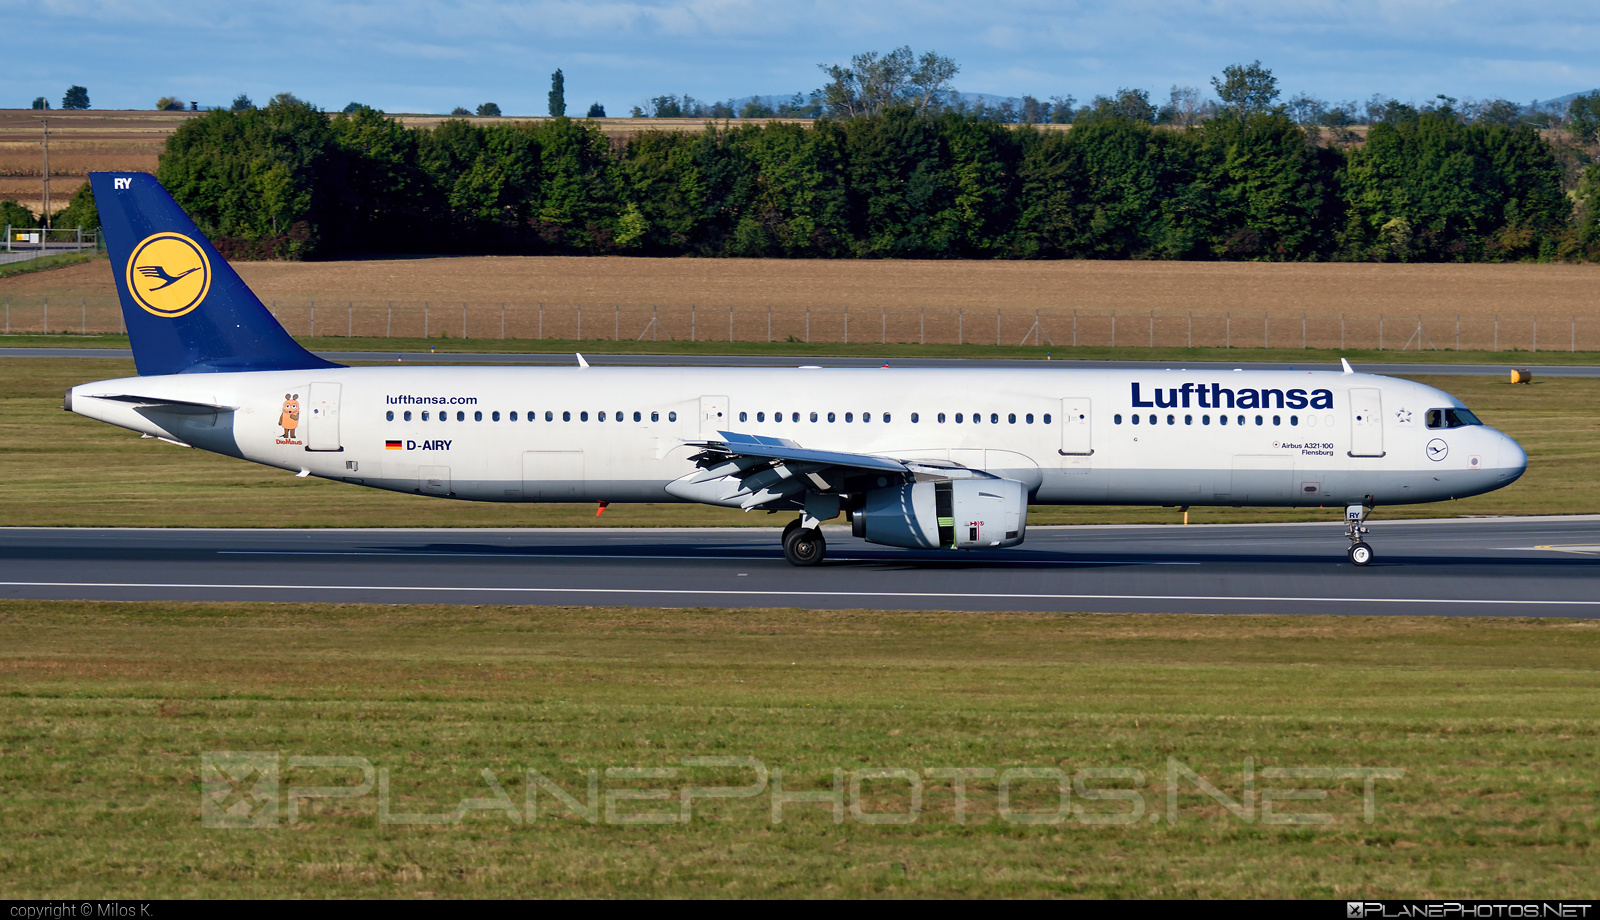 Airbus A321-131 - D-AIRY operated by Lufthansa #a320family #a321 #airbus #airbus321 #lufthansa